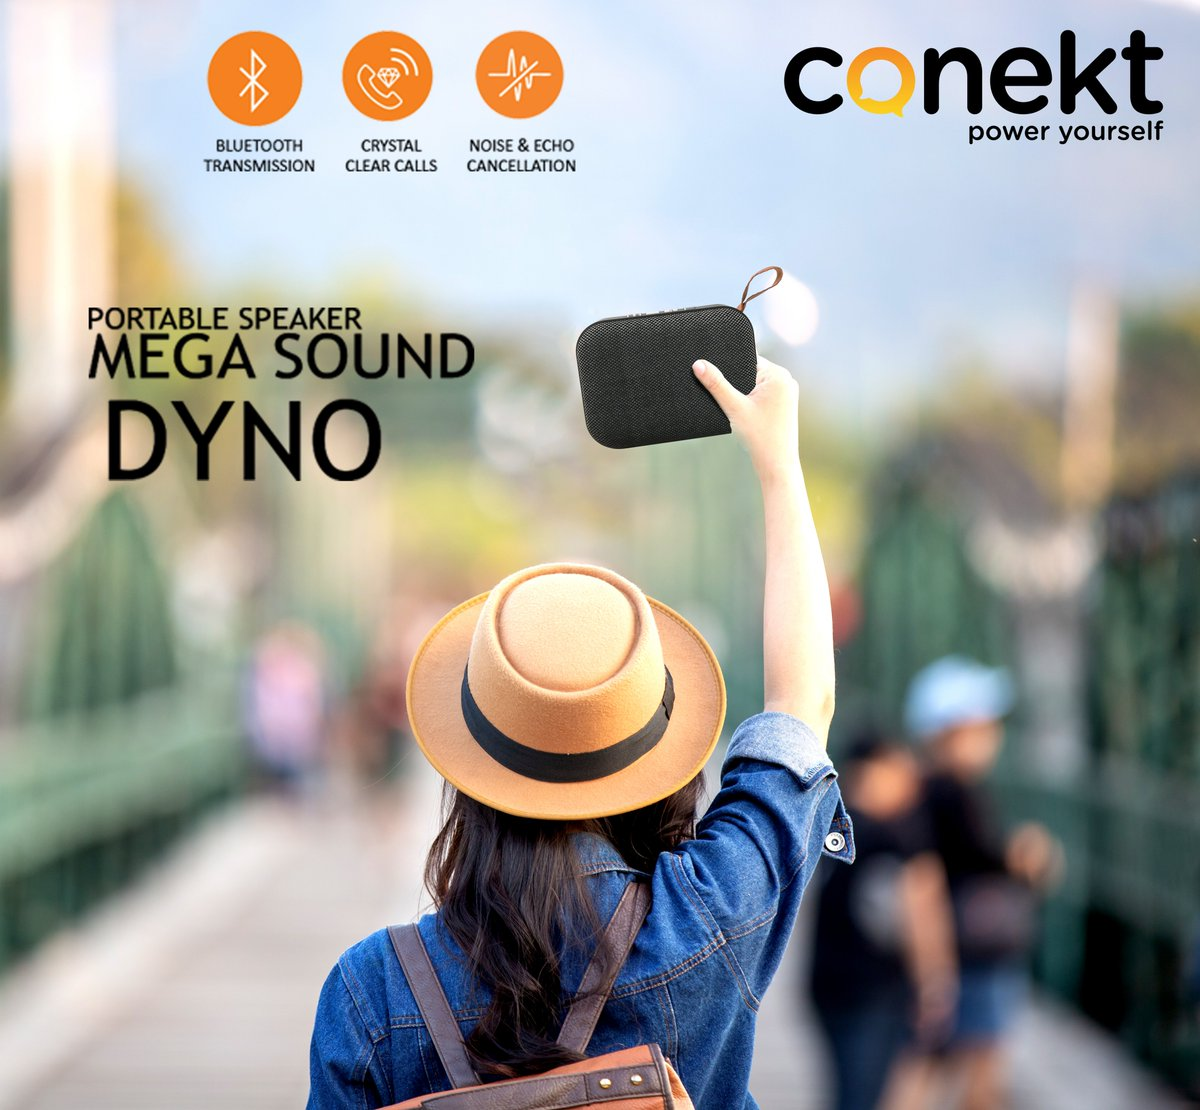 Your #Favourite Music will follow you with #Portable #Bluetooth Speaker DYNOExplore Our more Products http://www.conekt.in 👈👈👈For Buying Online https://tinyurl.com/y4qlnwyu 👈👈👈#Rohitsharma #Hitman #CWC19 #Worldcup19 #MobileGadgets #Conekt #Poweryourself